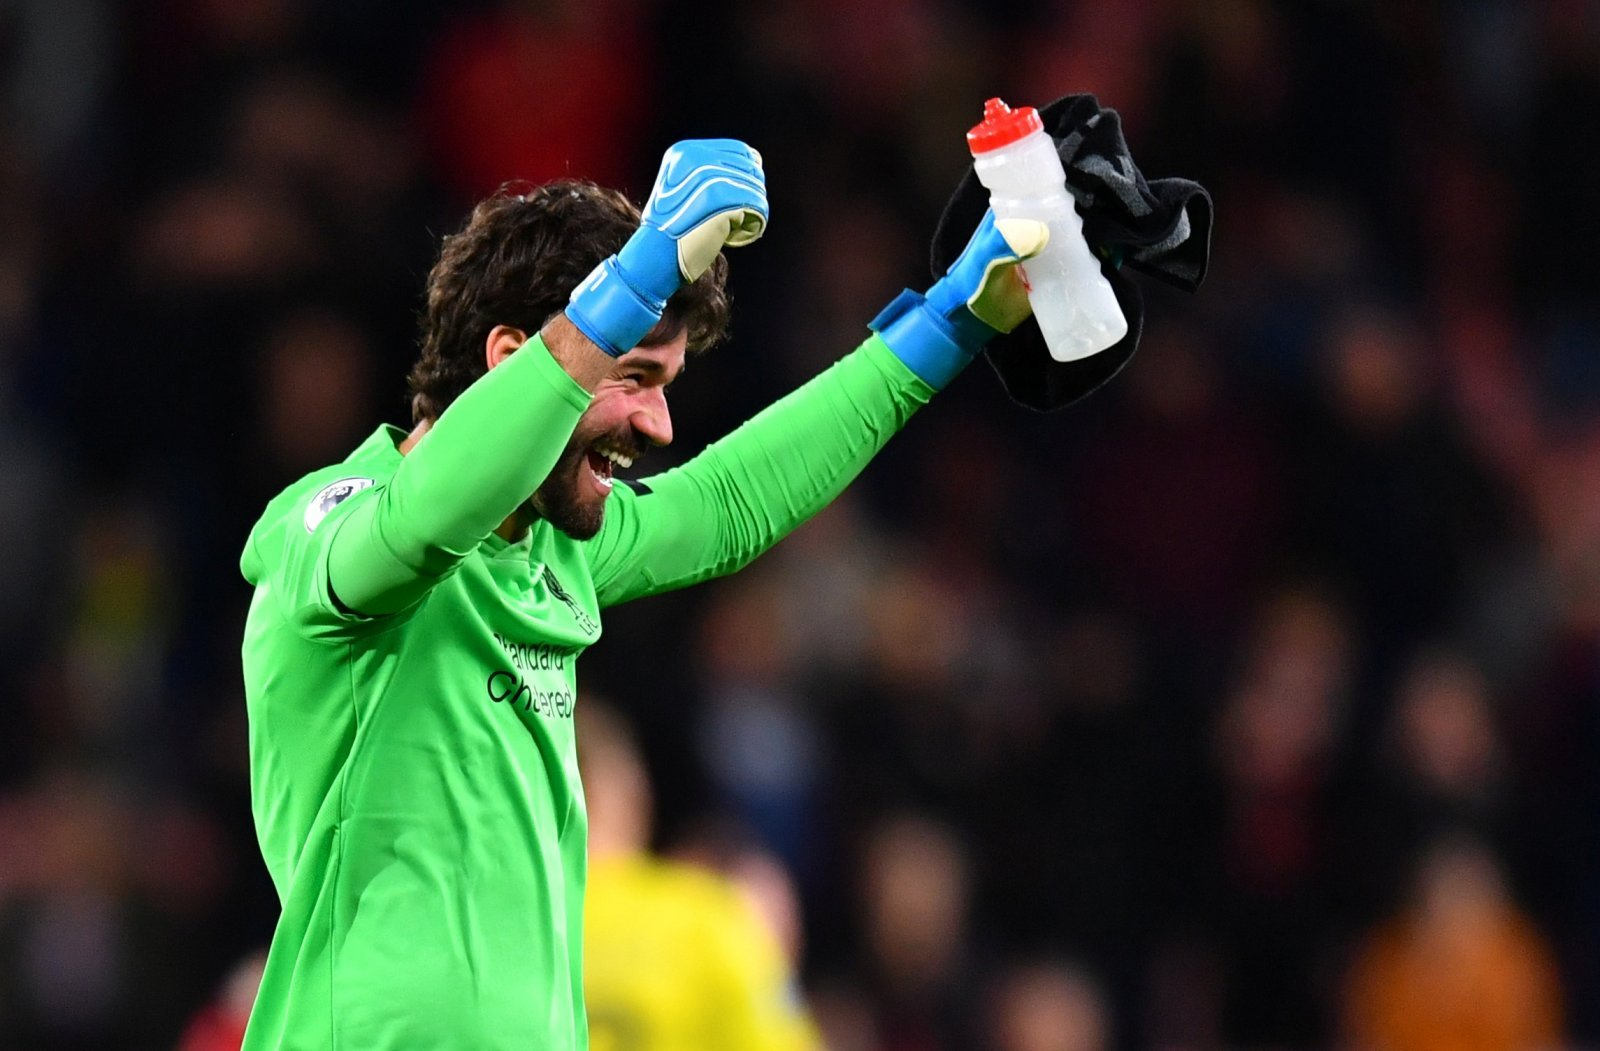 Liverpool: Fans hail Alisson Becker for his recent outings in the Champions League